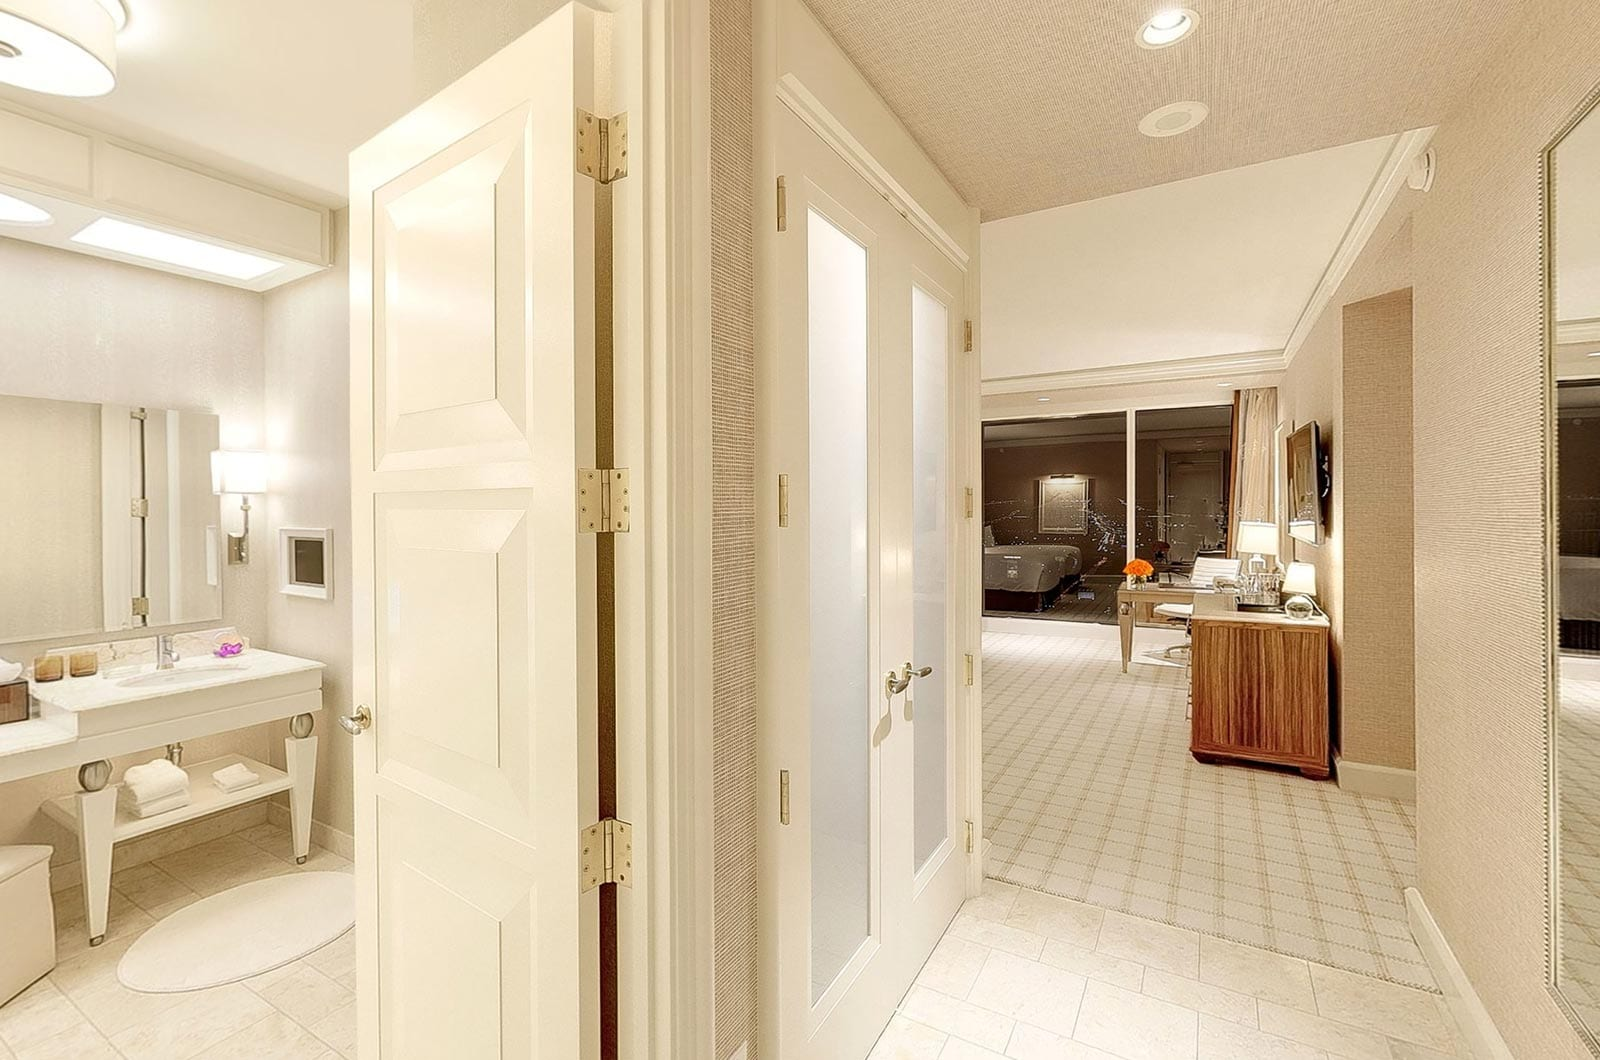 Feat-Hotel-Virtual-Tour-Company-Los-Angeles